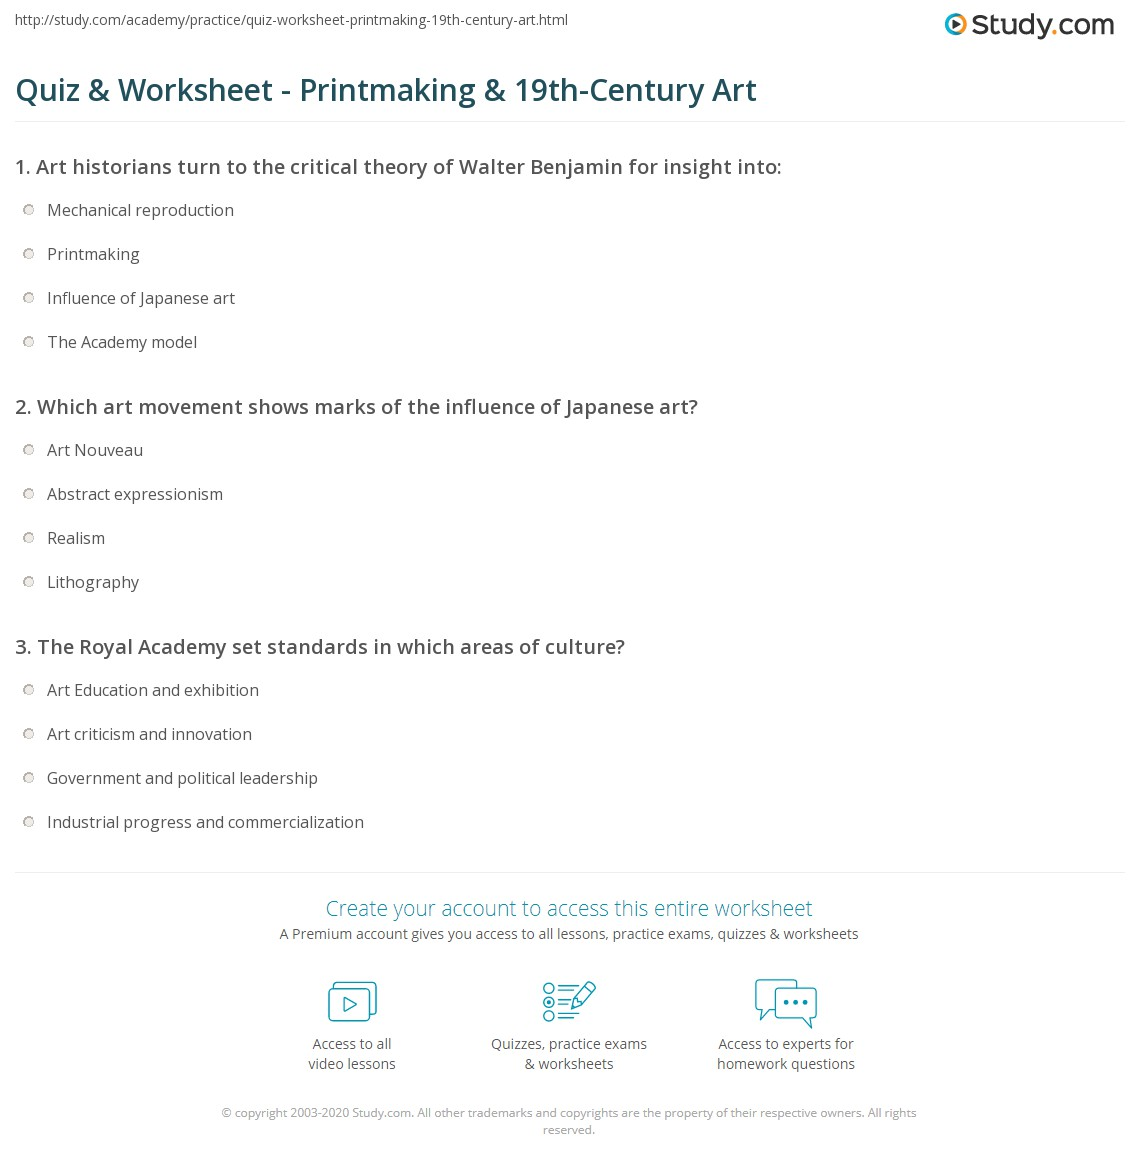 Quiz Worksheet Printmaking 19thCentury Art – Art Criticism Worksheet